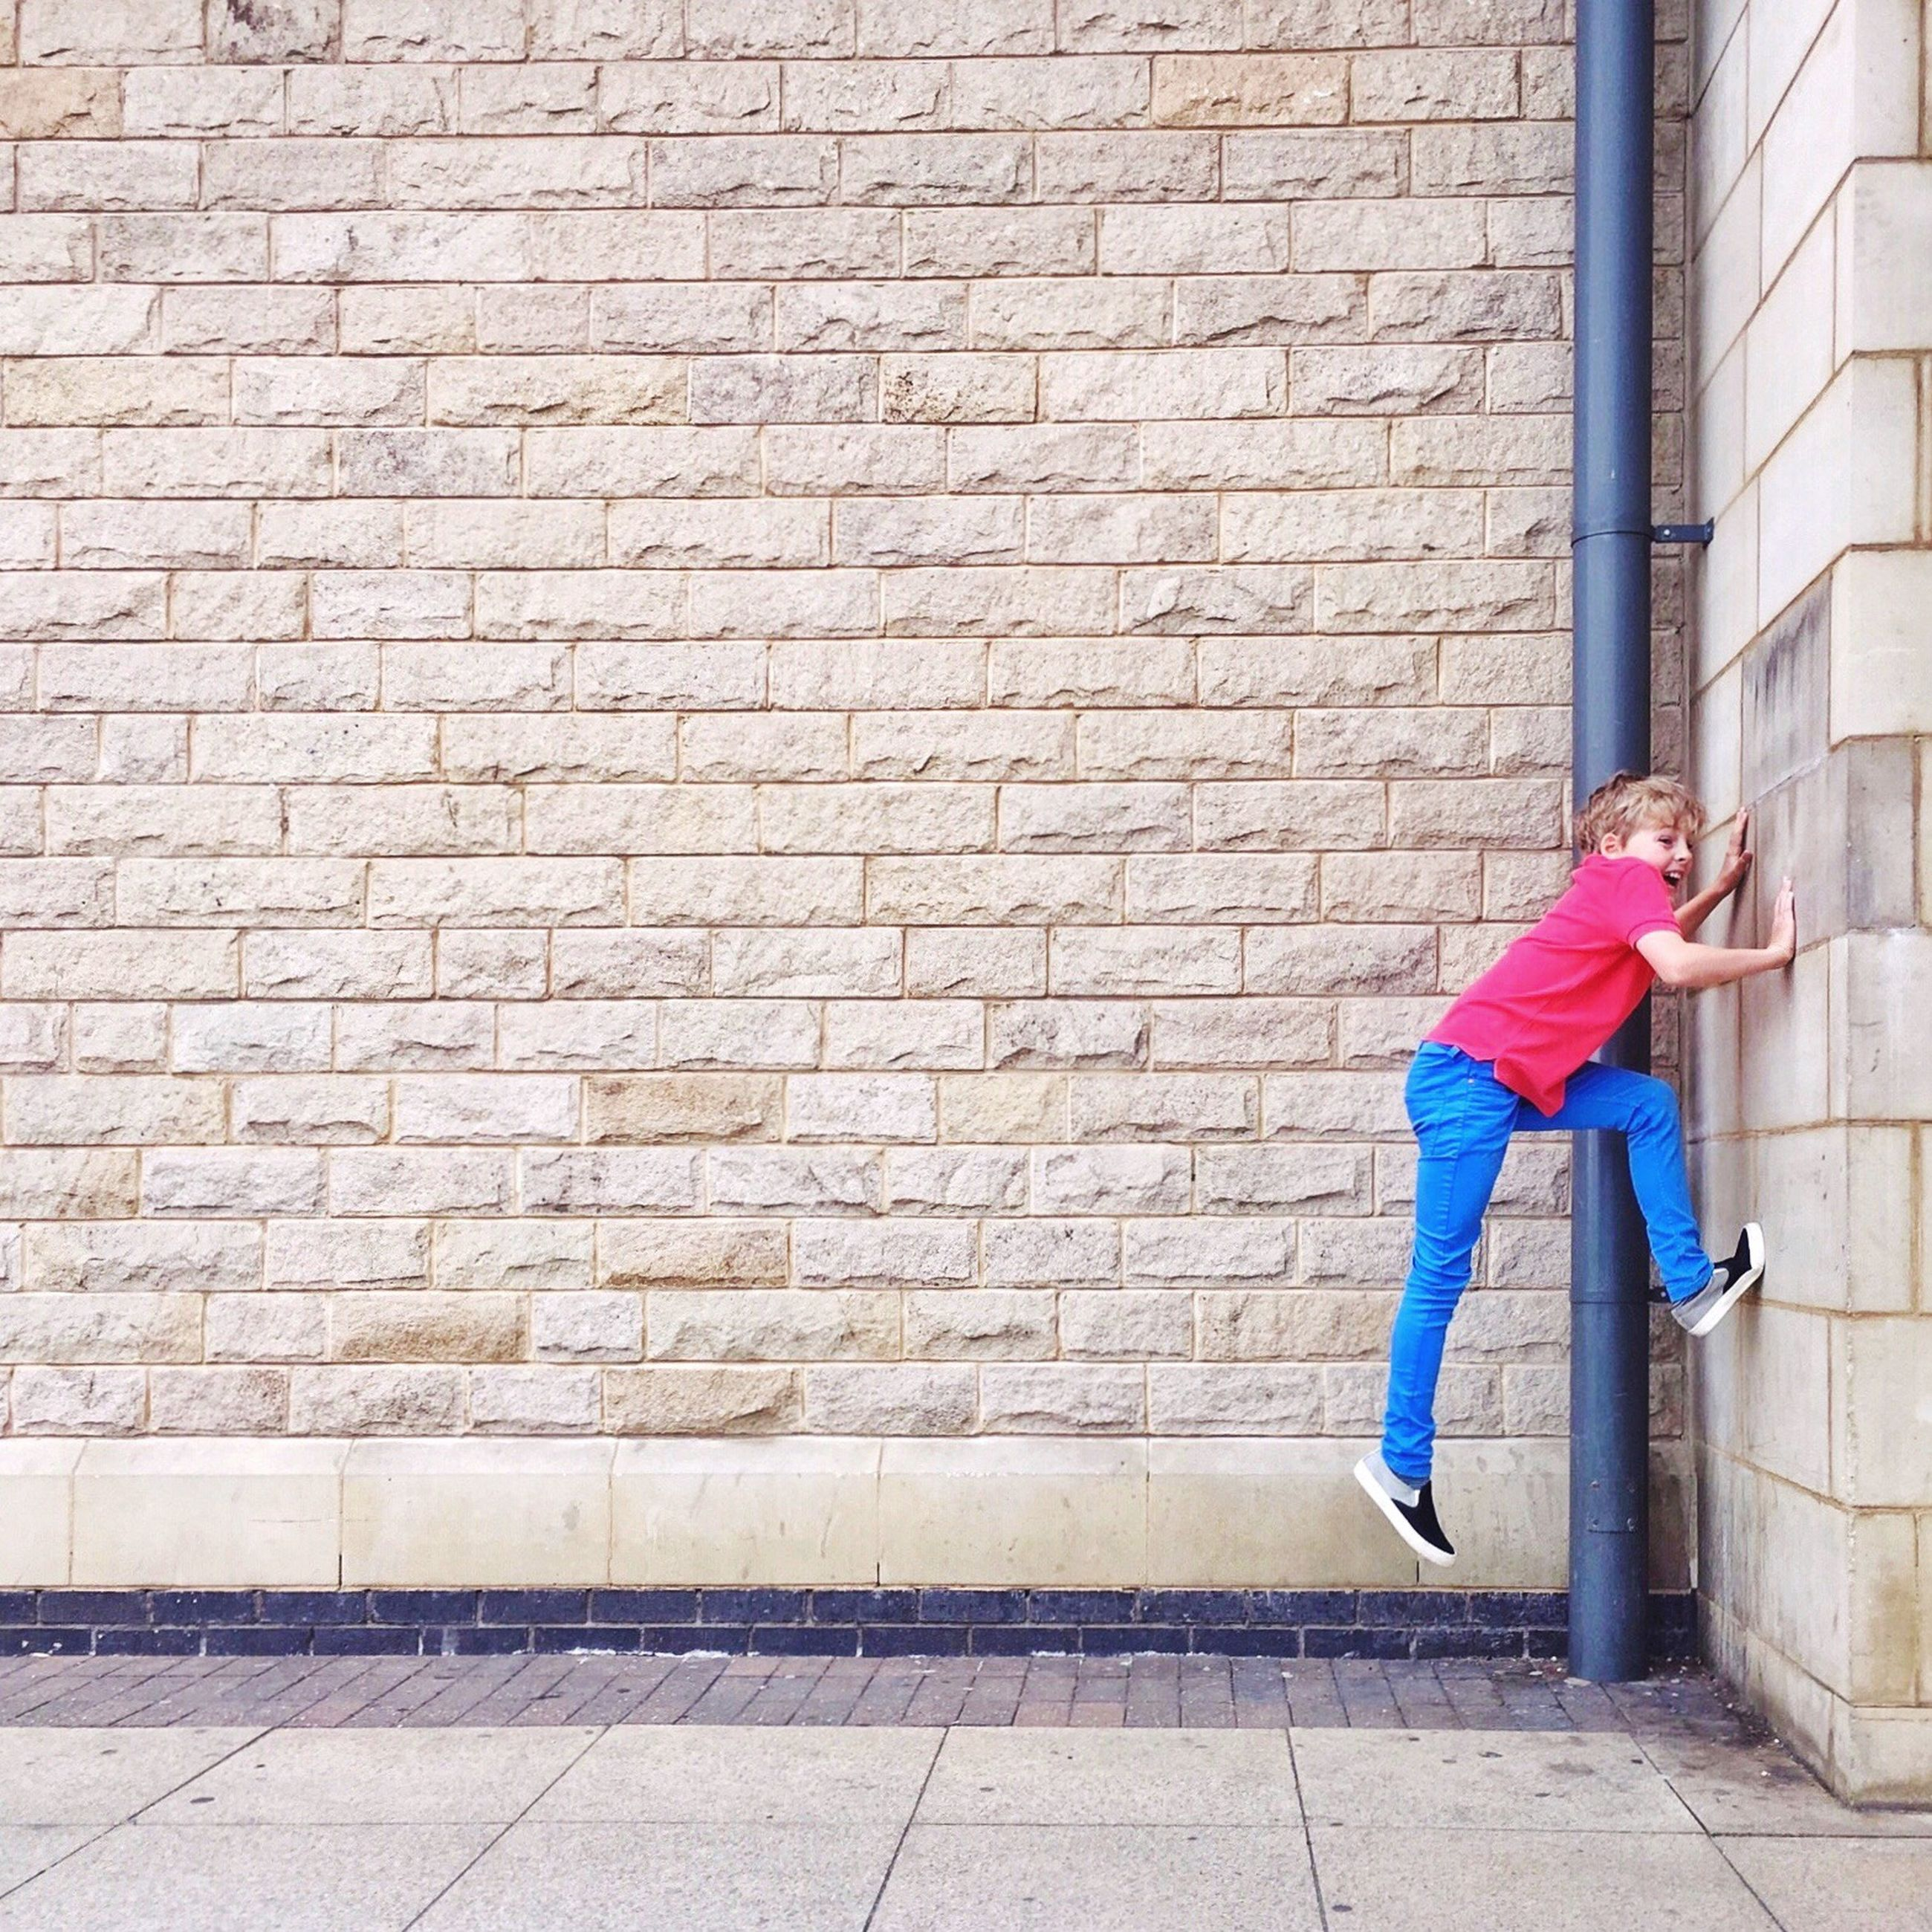 Billy. Climbing the wall. Hanging Out Enjoying Life Iphonephotography IPhoneography ShotOniPhone6 Mobilephotography Shootermag EyeEm Best Shots - People + Portrait